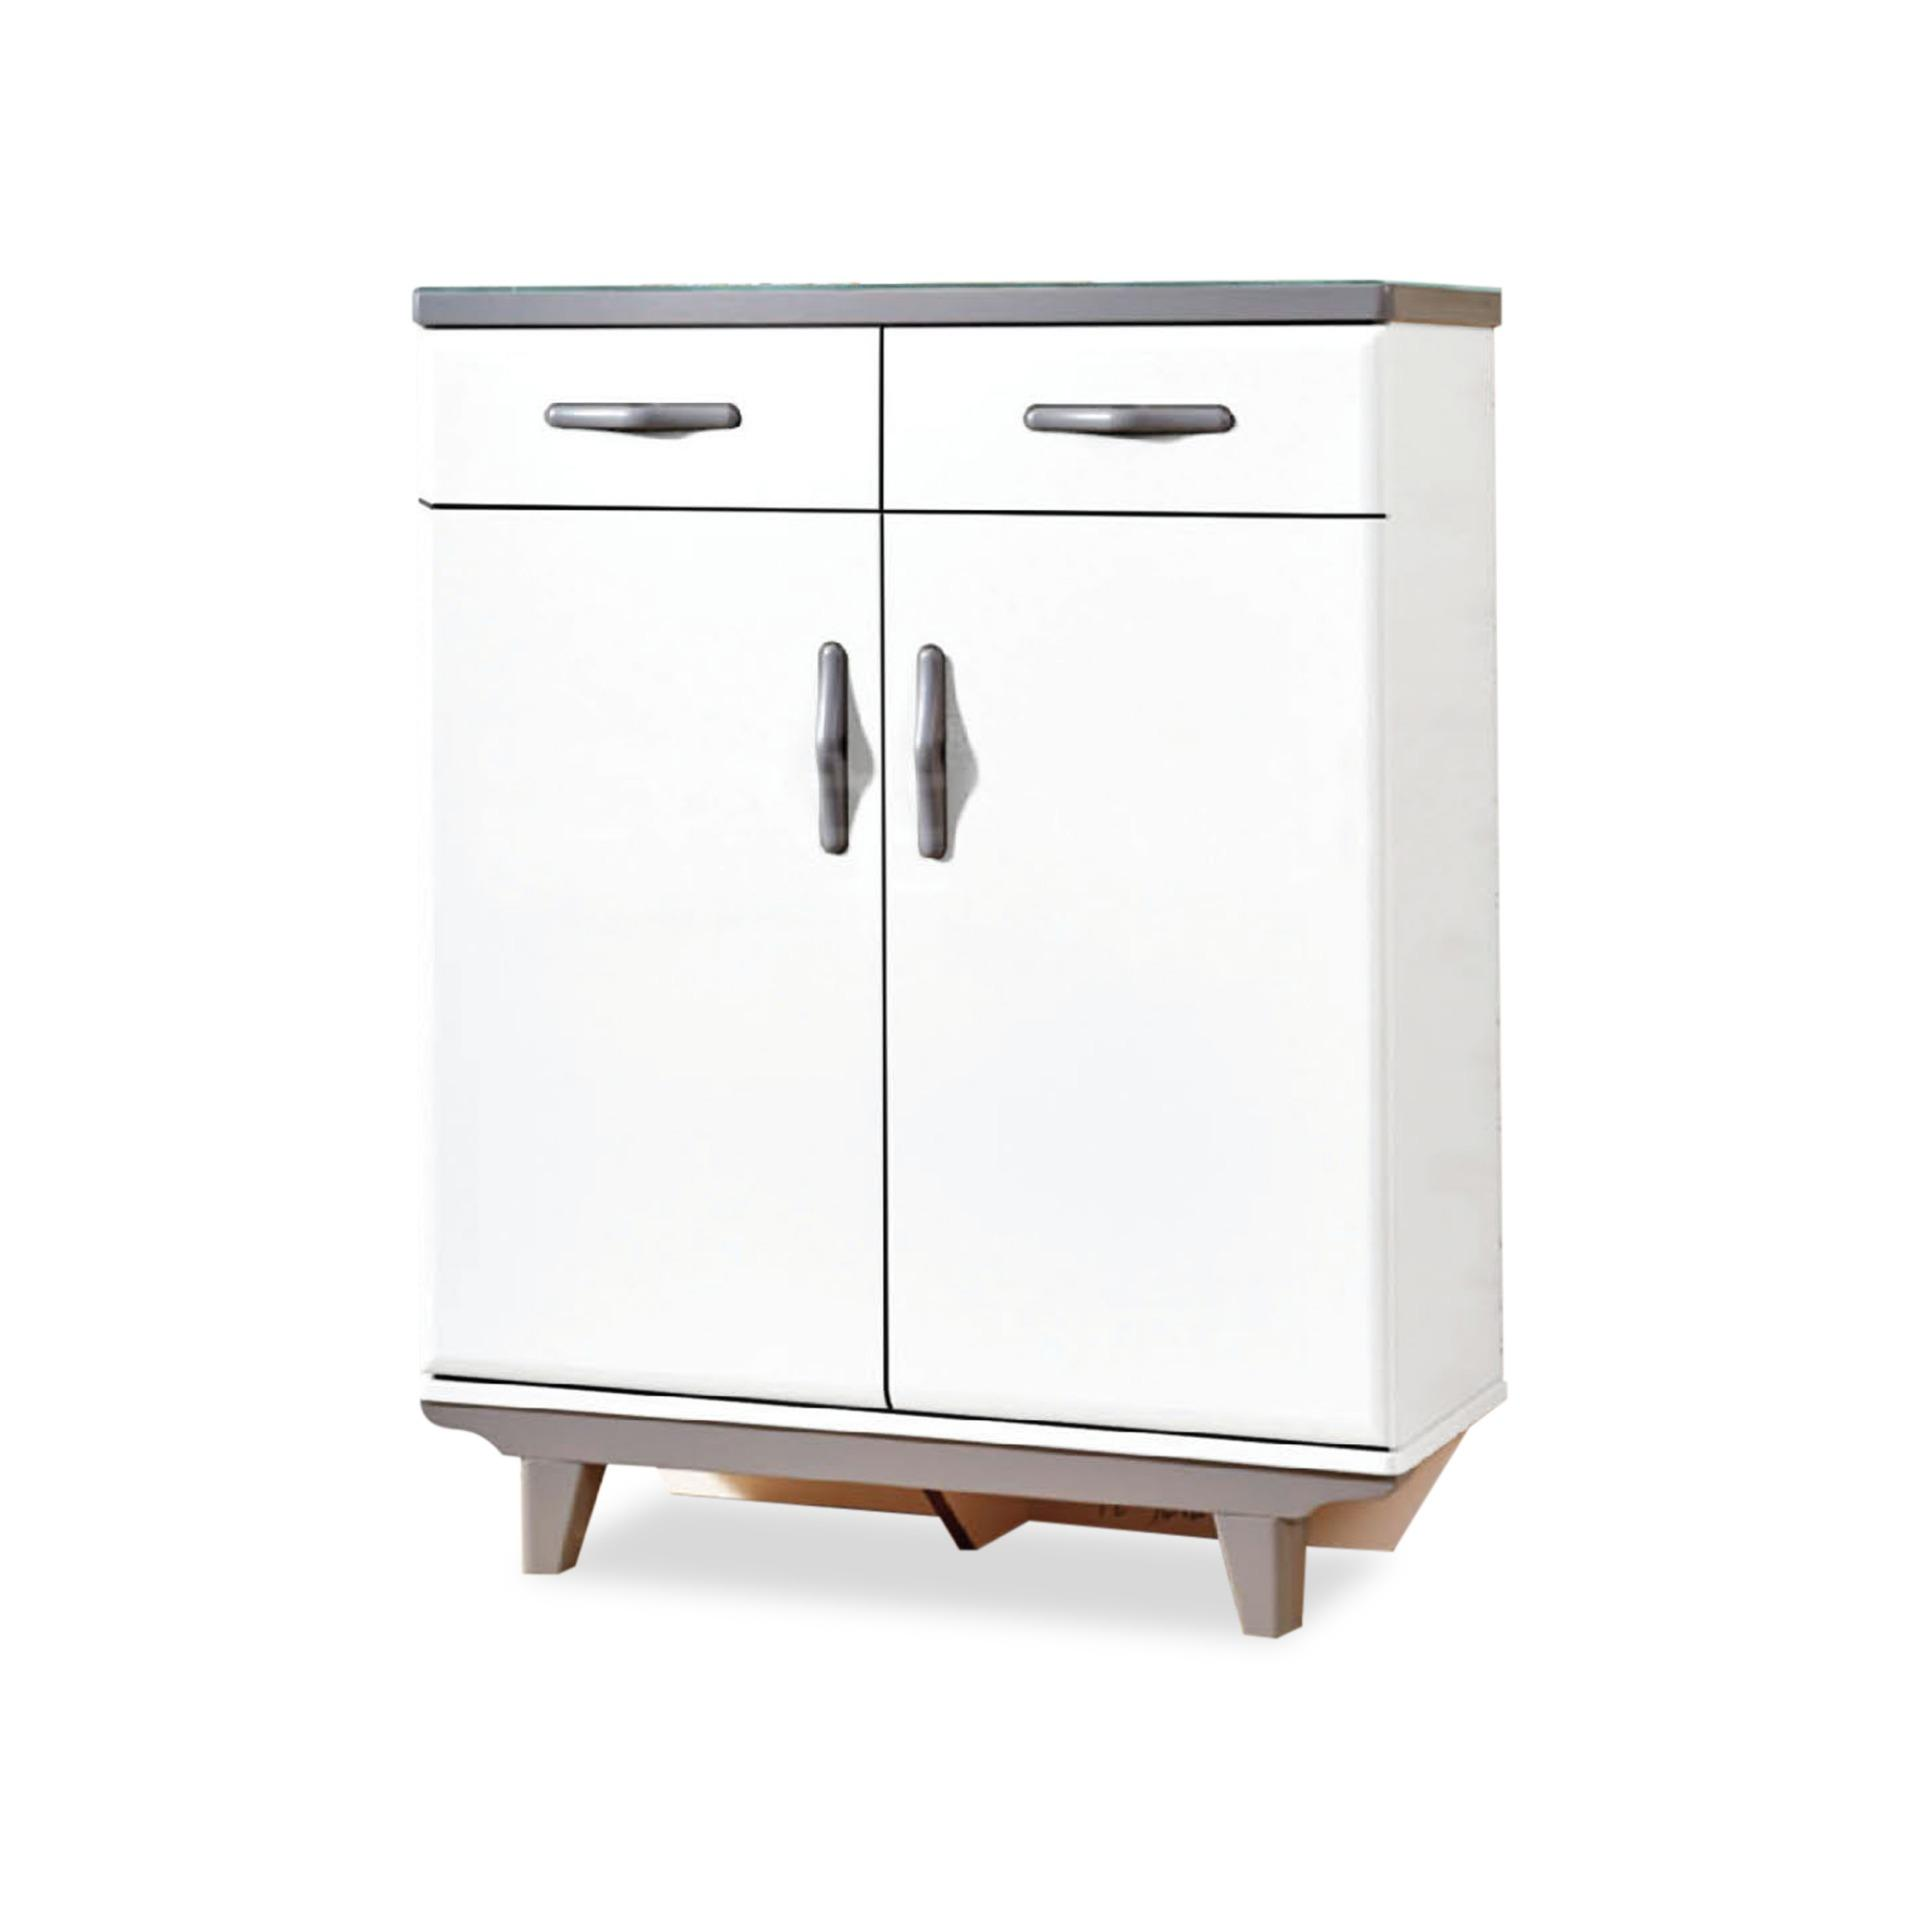 Sophie 2 Door Shoe Cabinet (FREE DELIVERY)(FREE ASSEMBLY)